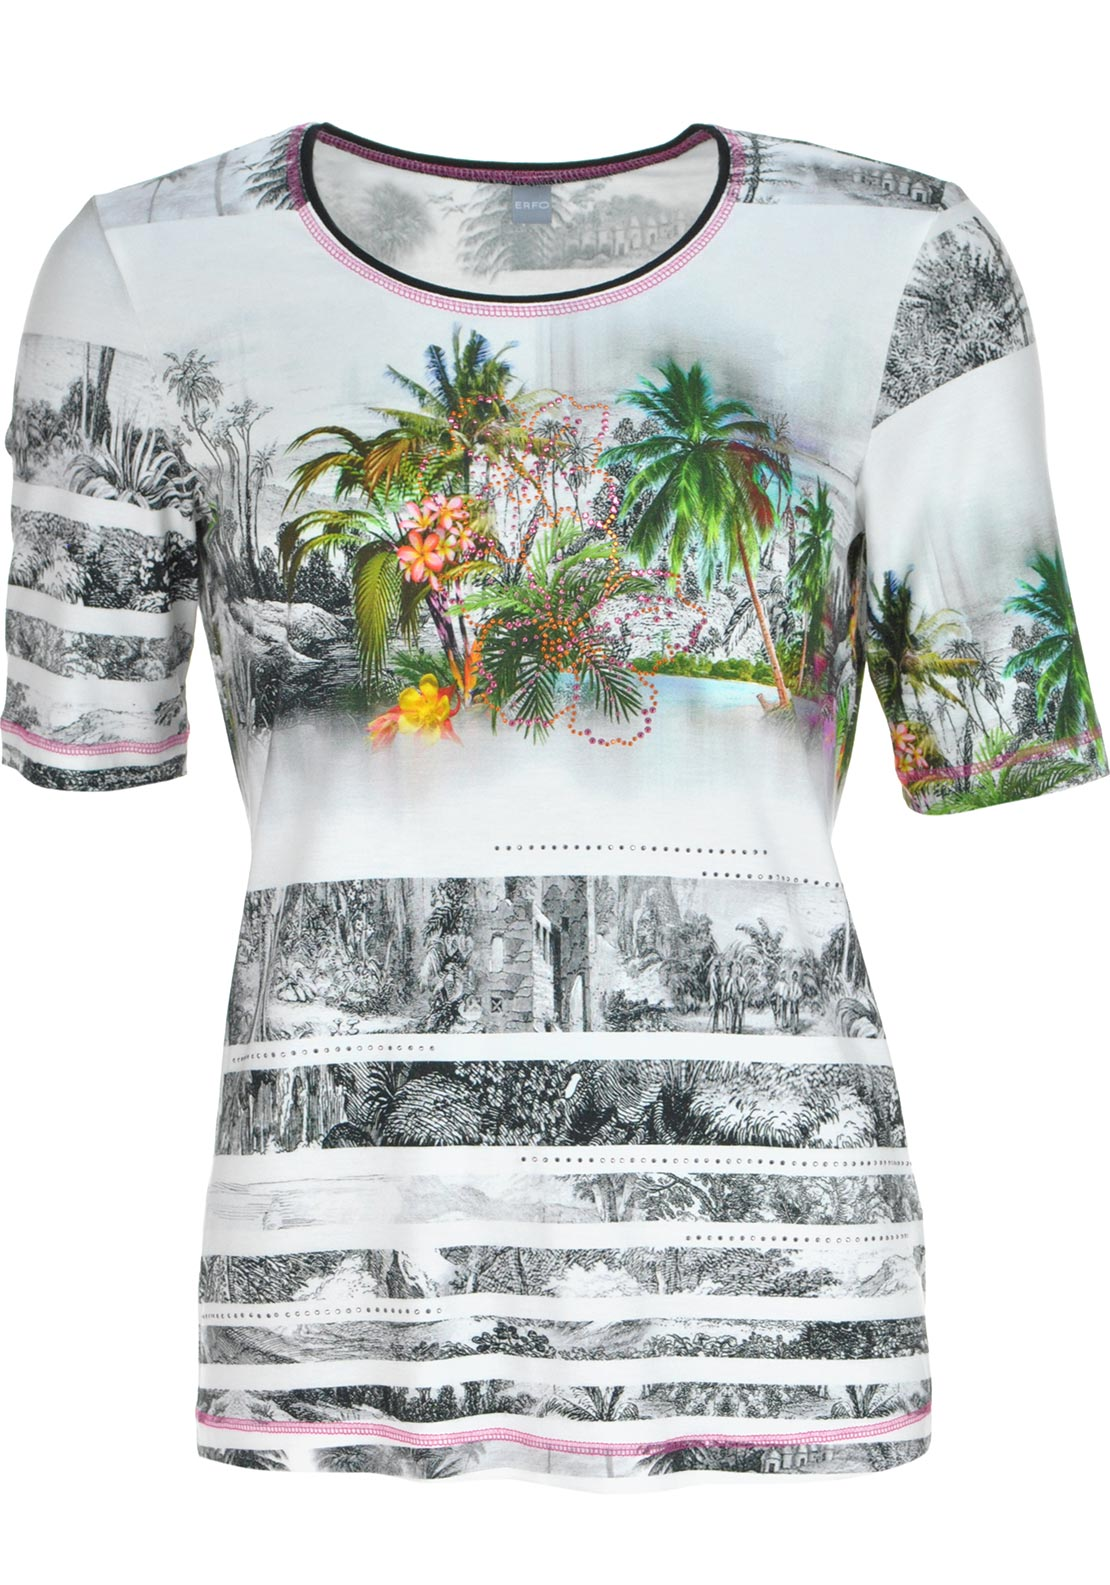 ERFO Tropical Print Short Sleeve T-Shirt, Multi-Coloured